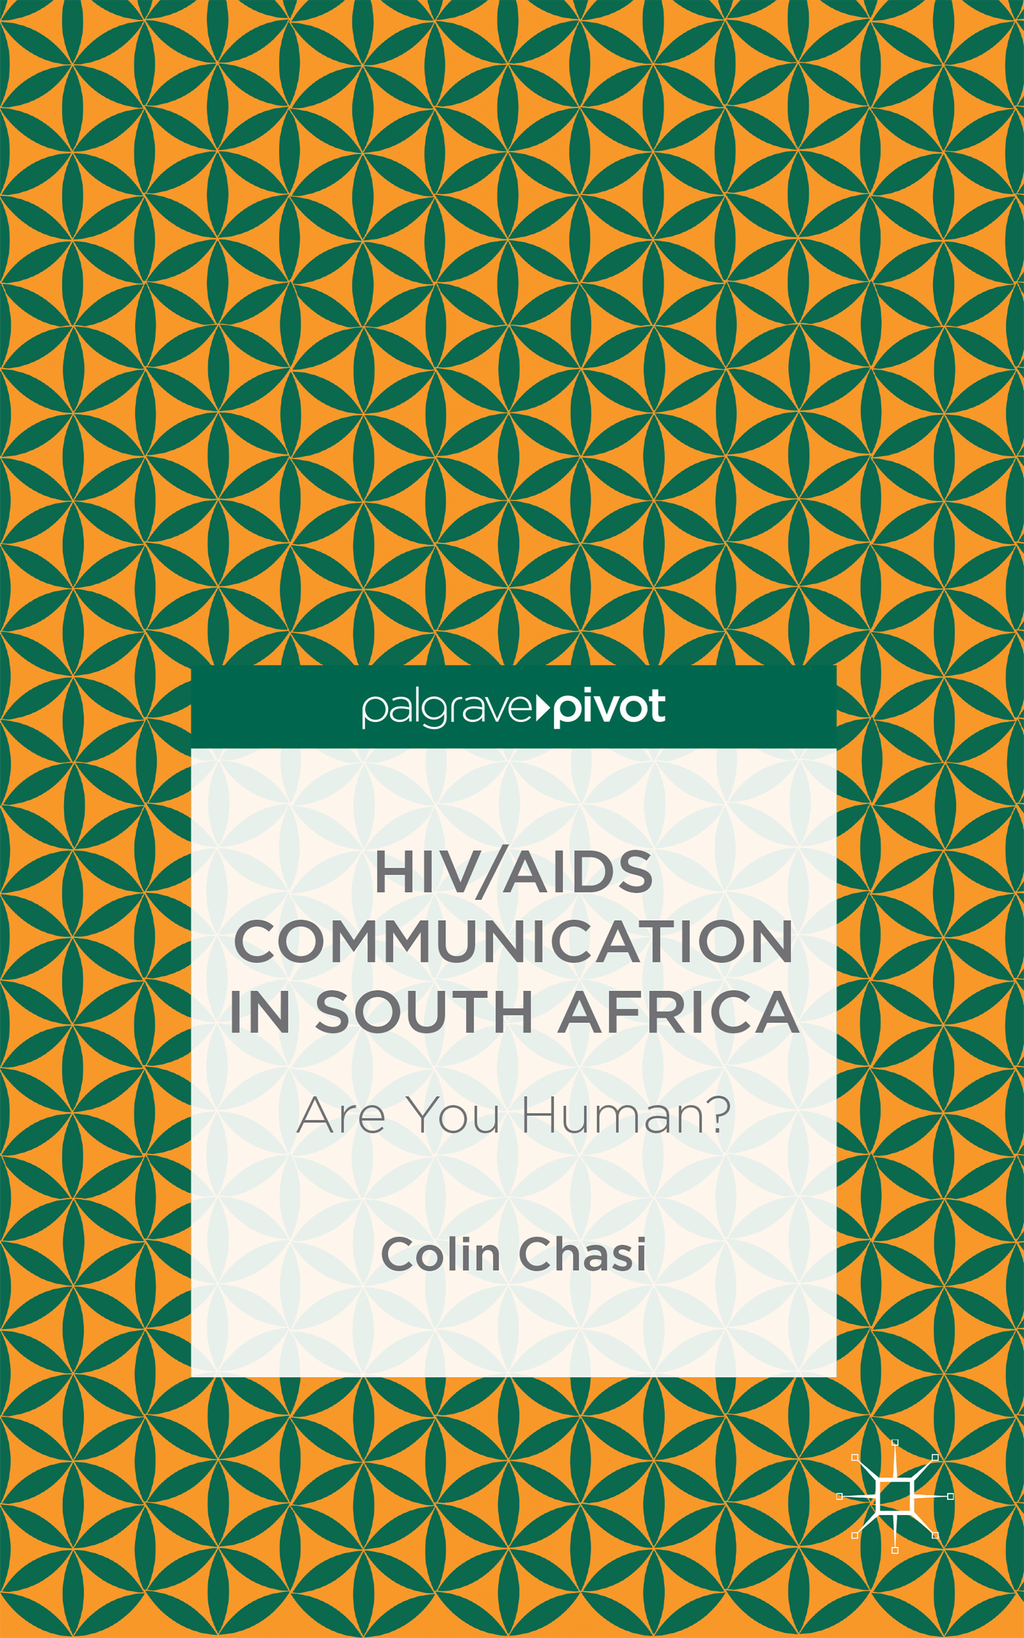 HIV/AIDS Communication in South Africa Are You Human?